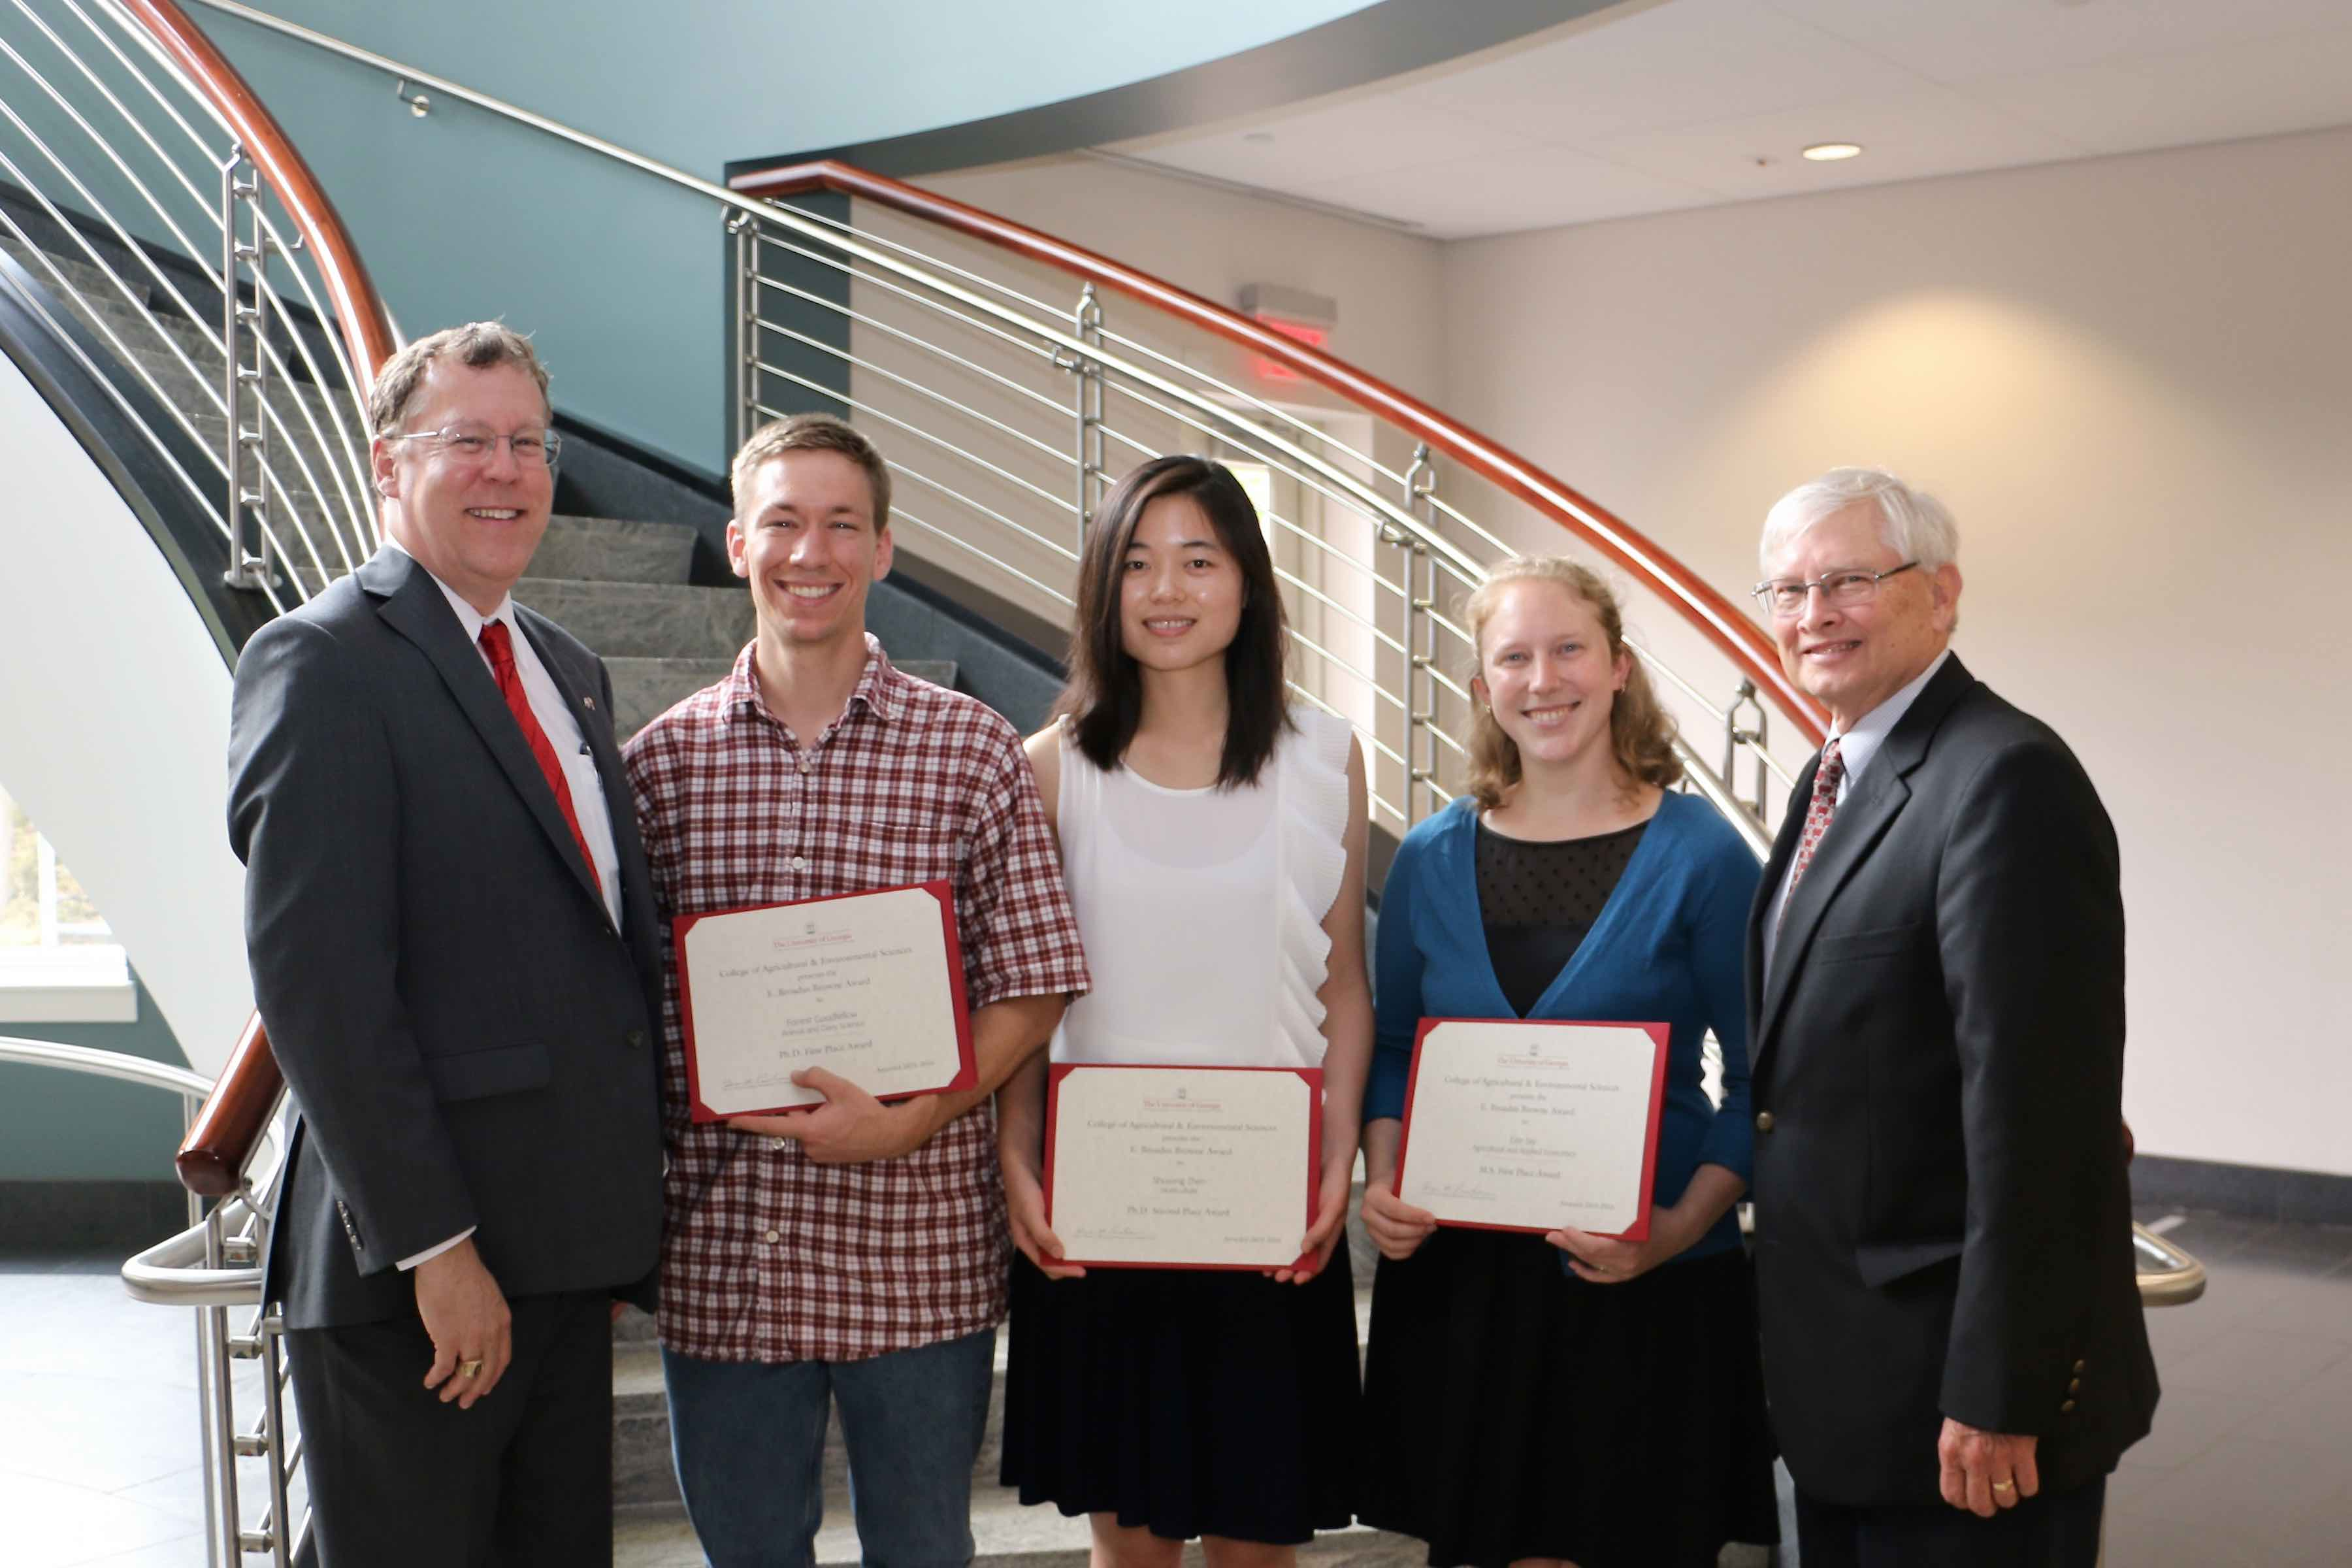 UGA College of Agricultural and Environmental Sciences Dean and Director Sam Pardue, far left, and CAES Associate Dean for Research Bob Shulstad, far right, congratulate doctorate students Forrest Goodfellow and Shuyang Zhen and master's degree student Erin Roestshcehl on their E. Broadus Browne Awards for creative research.